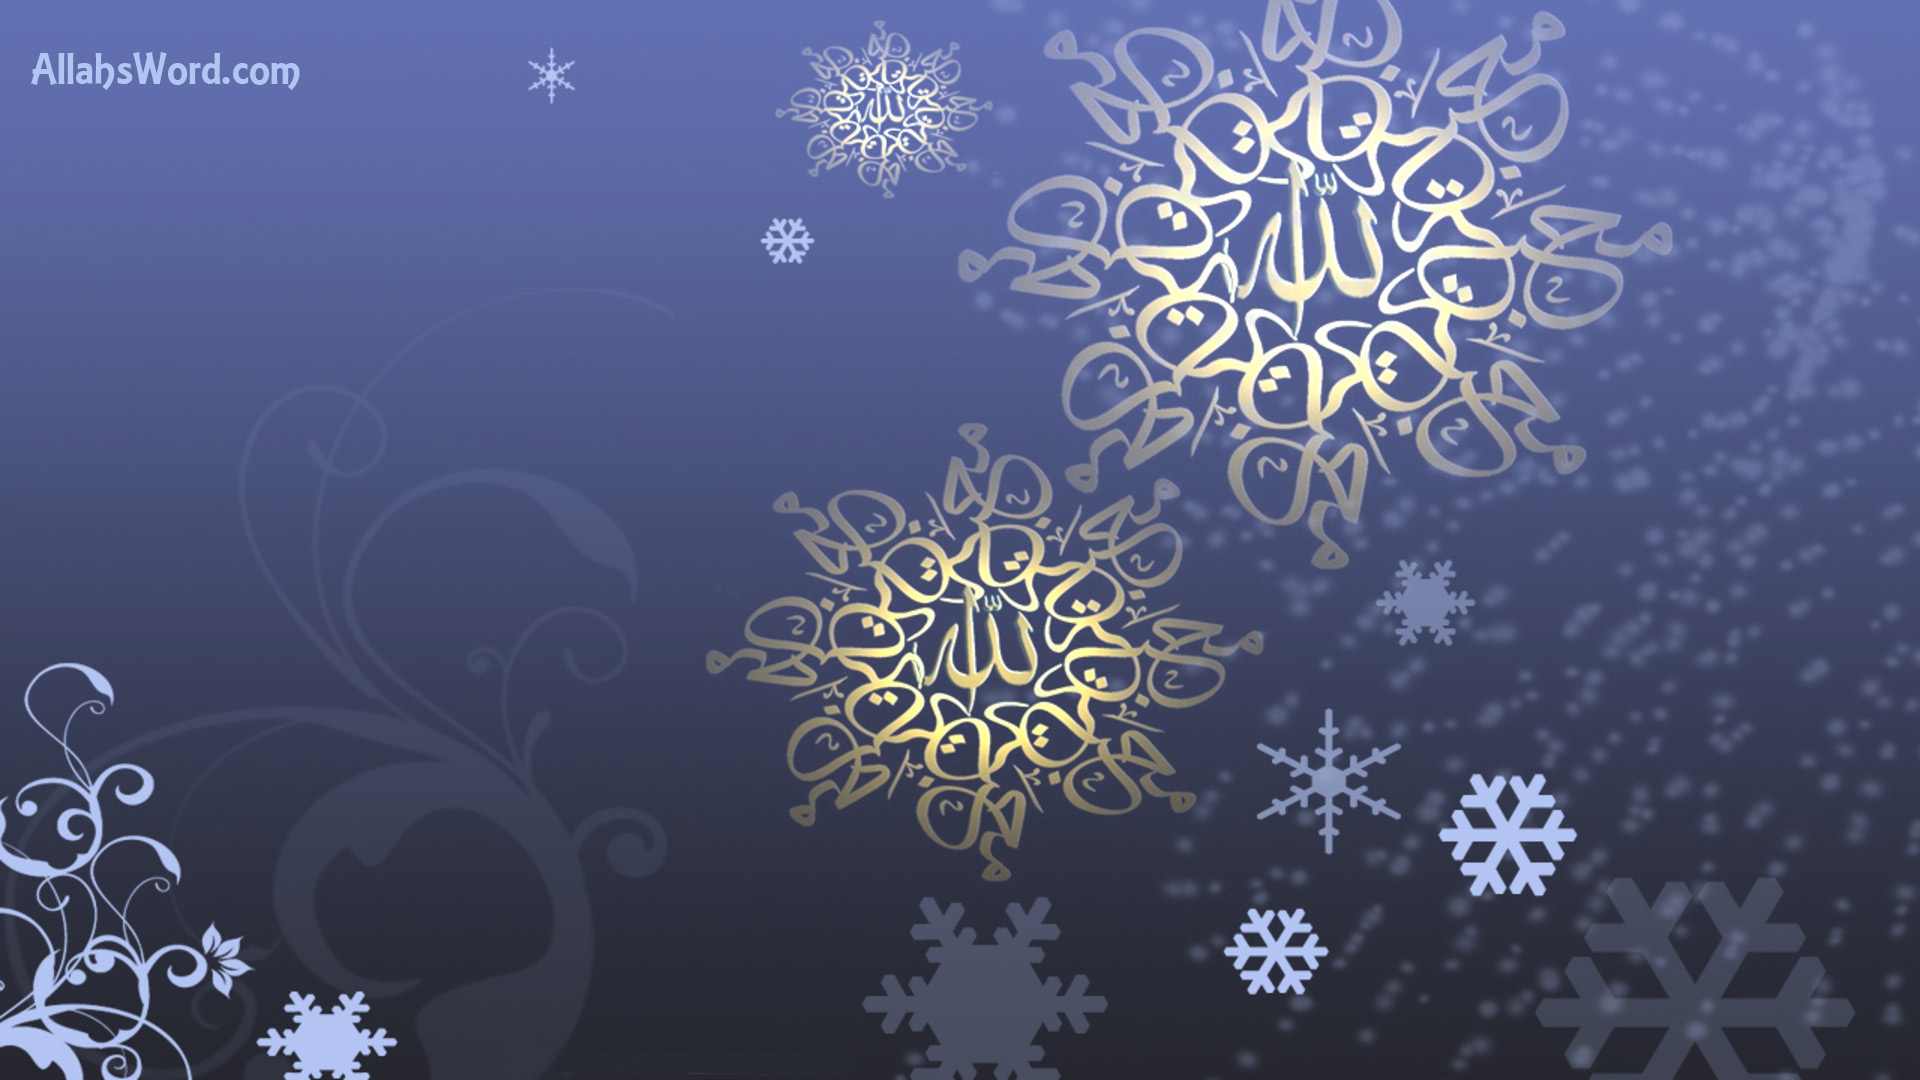 Allah Winter Background HD Wallpaper